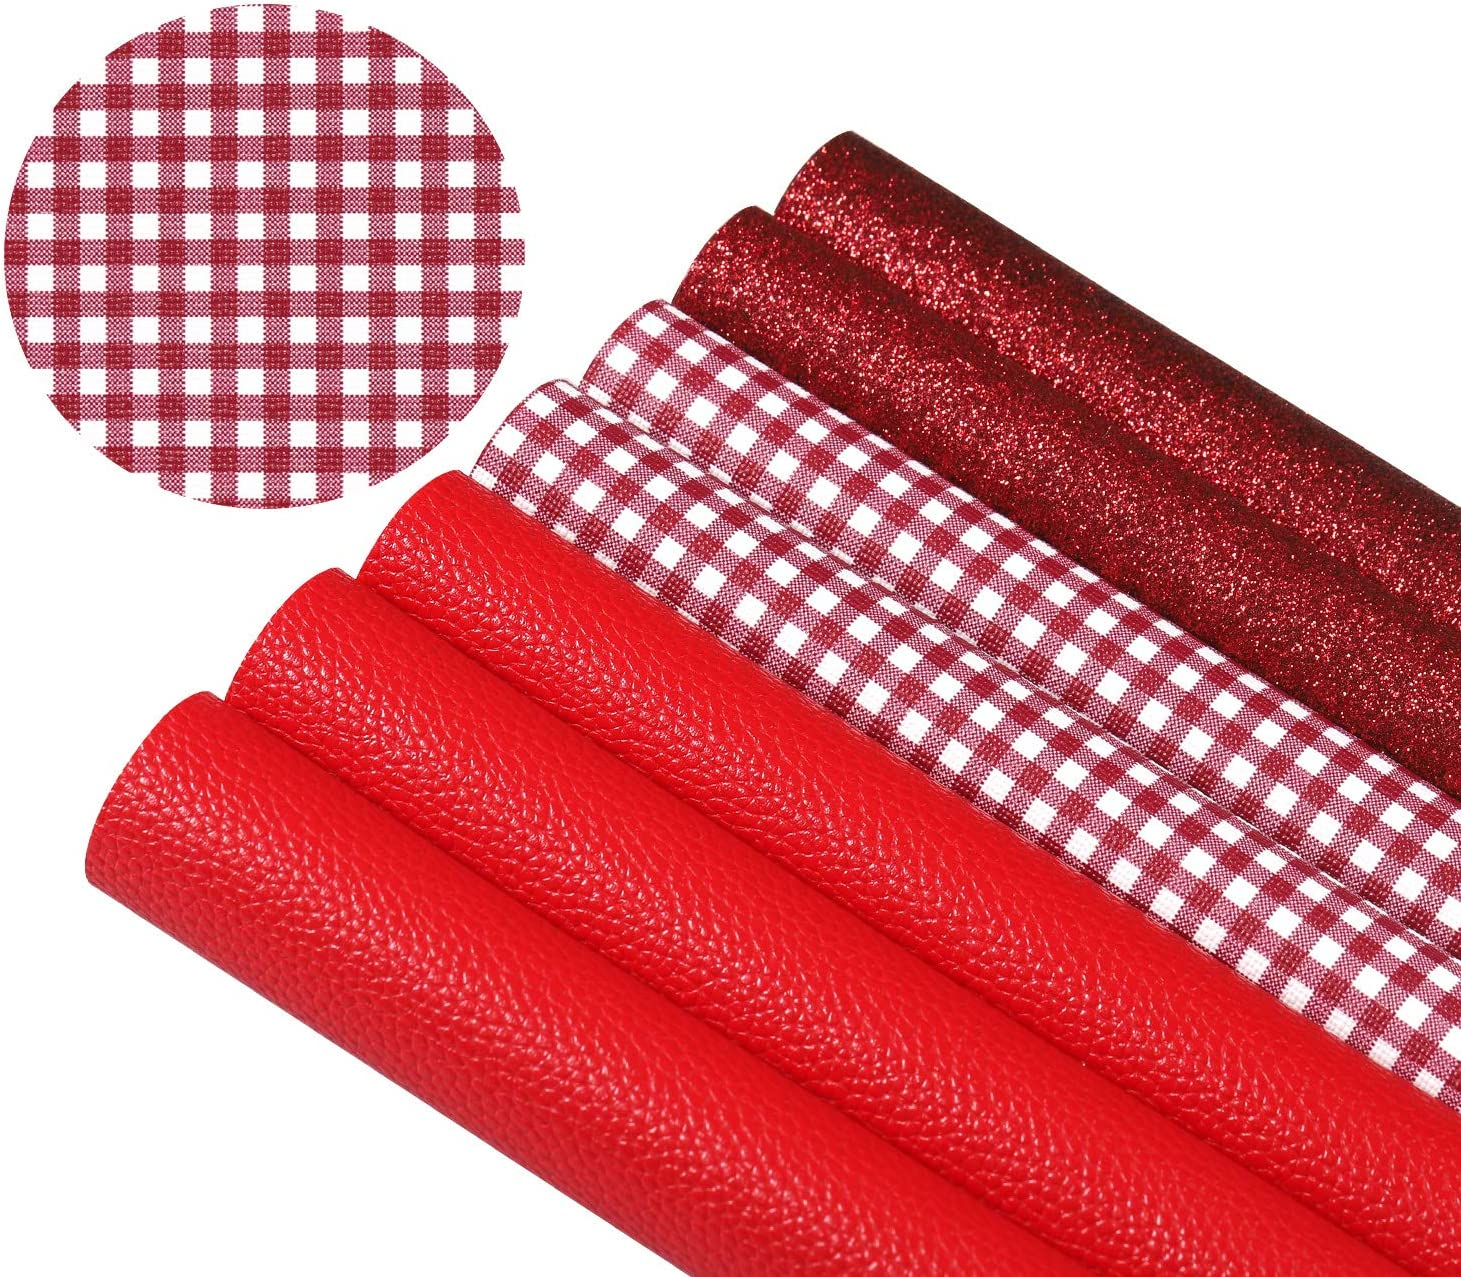 Picheng 7Pcs Red Faux Leather Sheets Plaid S Fabric Ranking TOP15 Sale